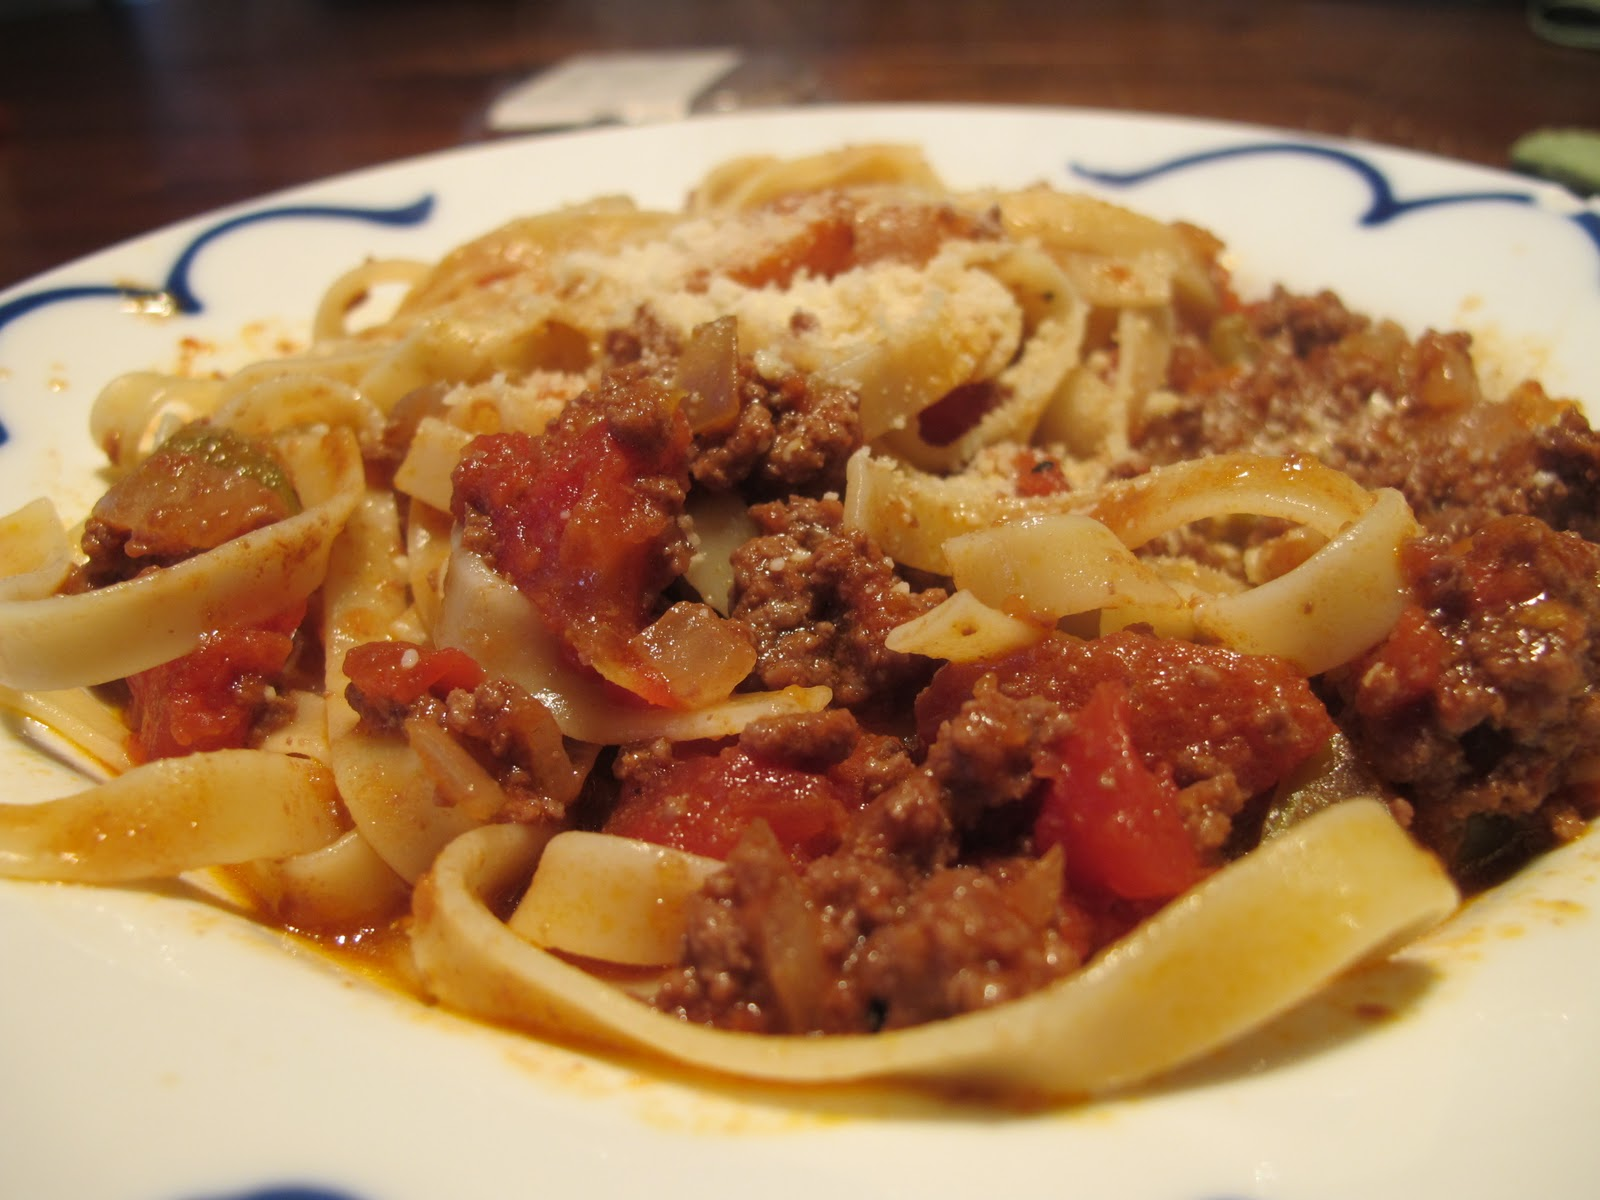 FEED ME: Pasta with Bolognese Sauce